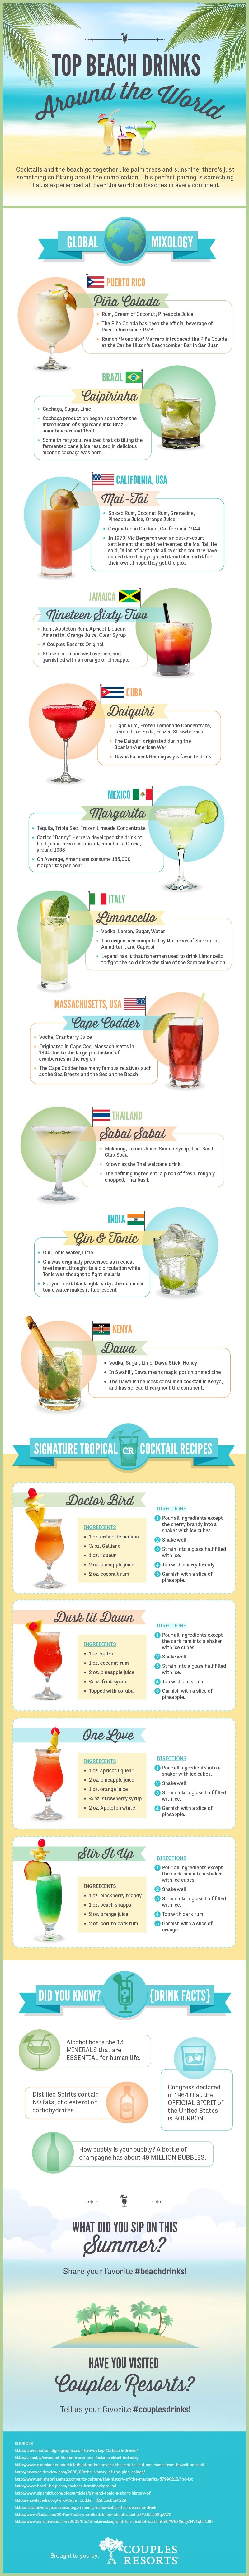 paint-CR_TopBeachDrinks_Infographic-V6-01-wide